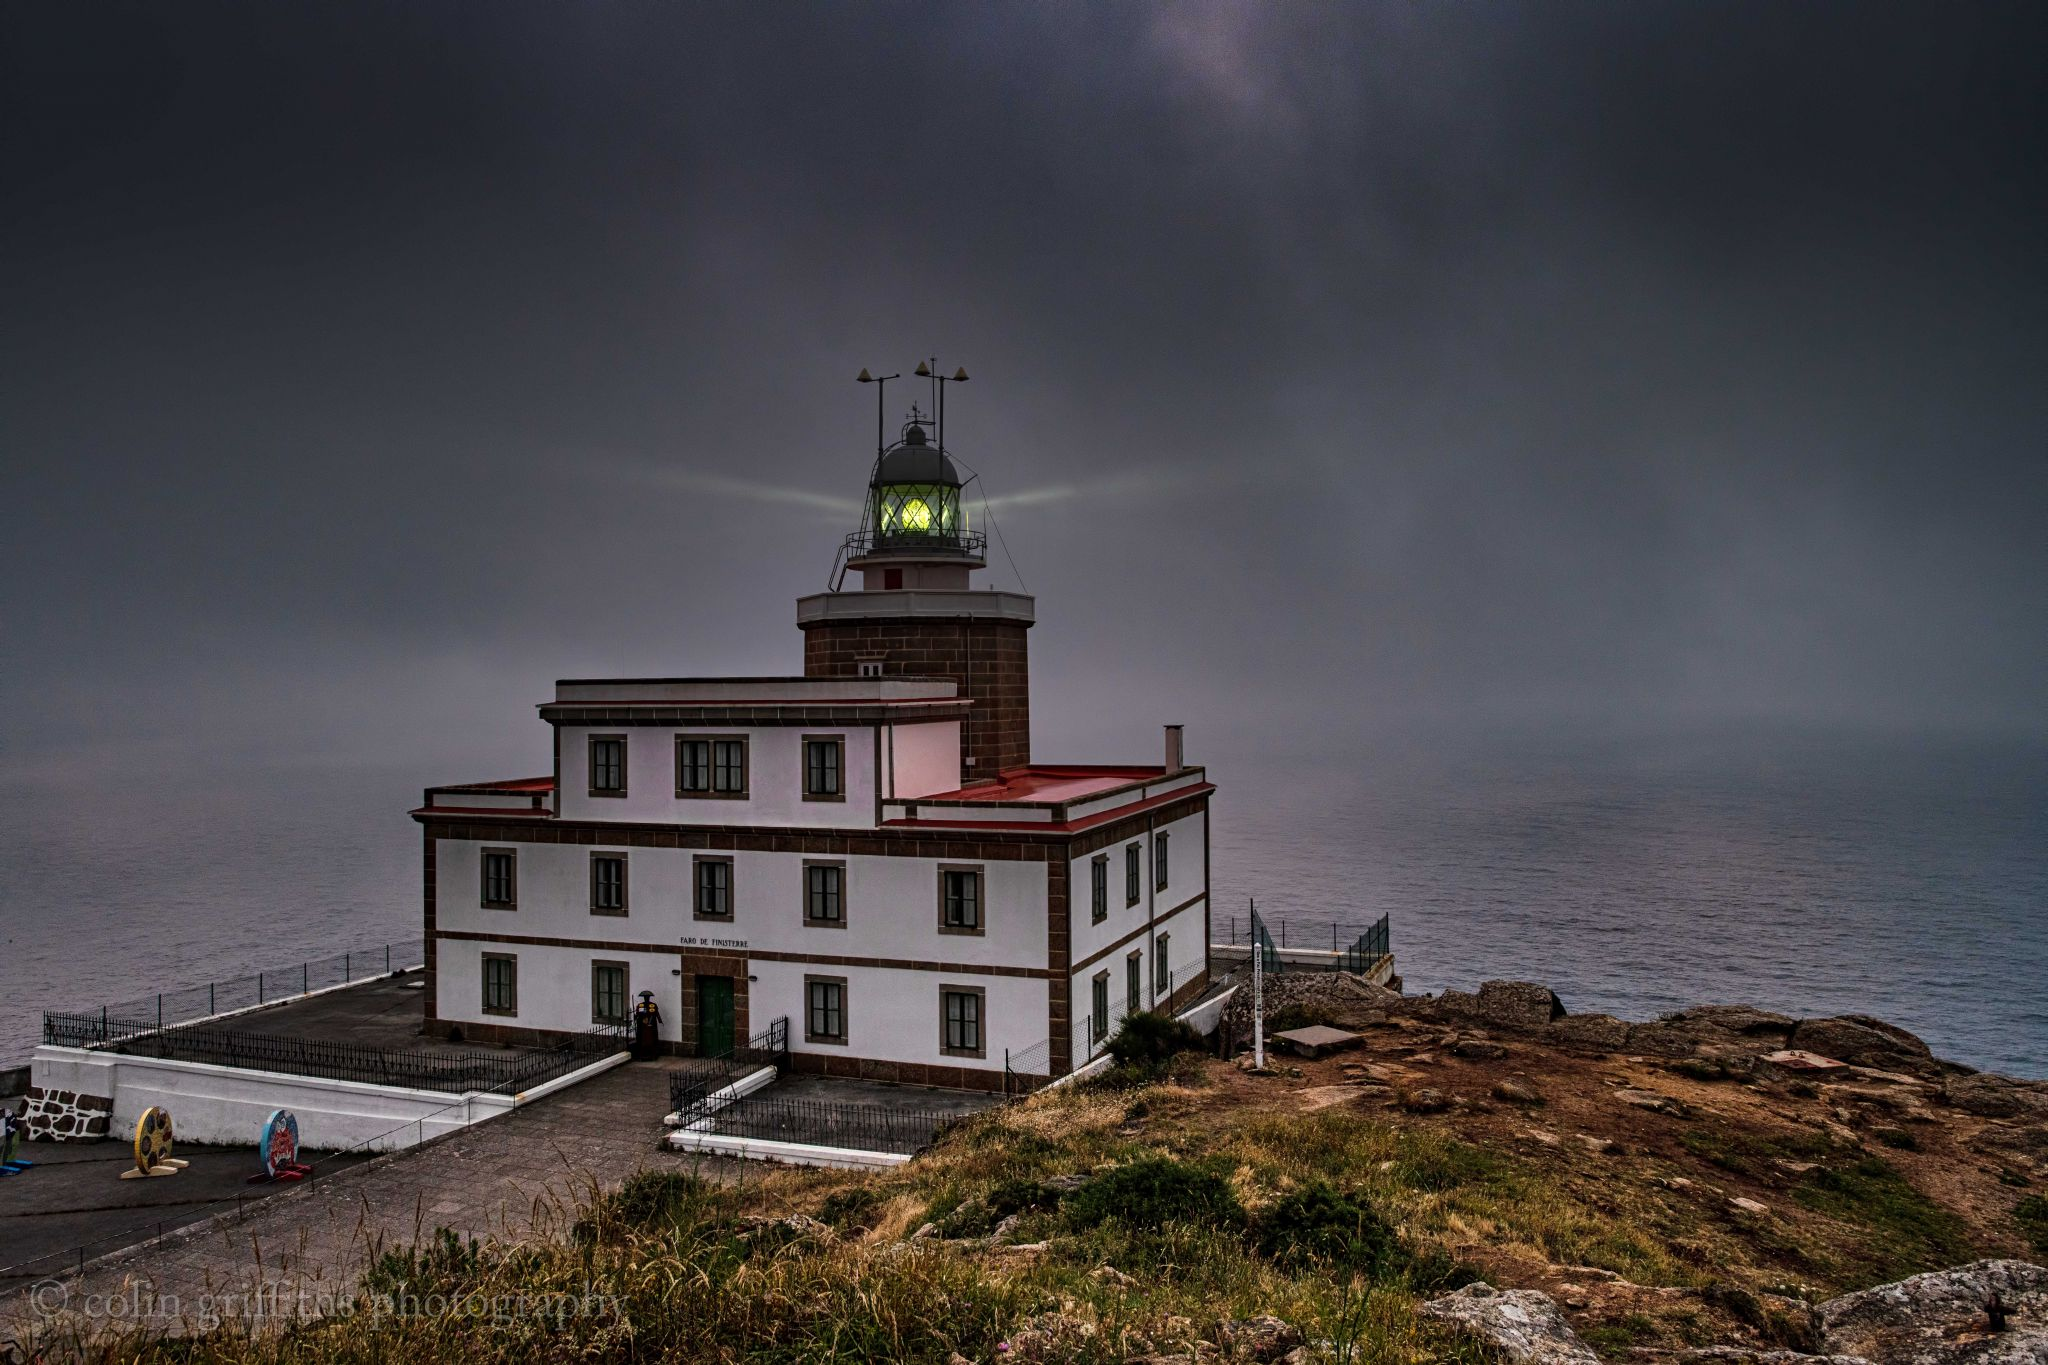 The lighthouse at Cape Finistere, Spain